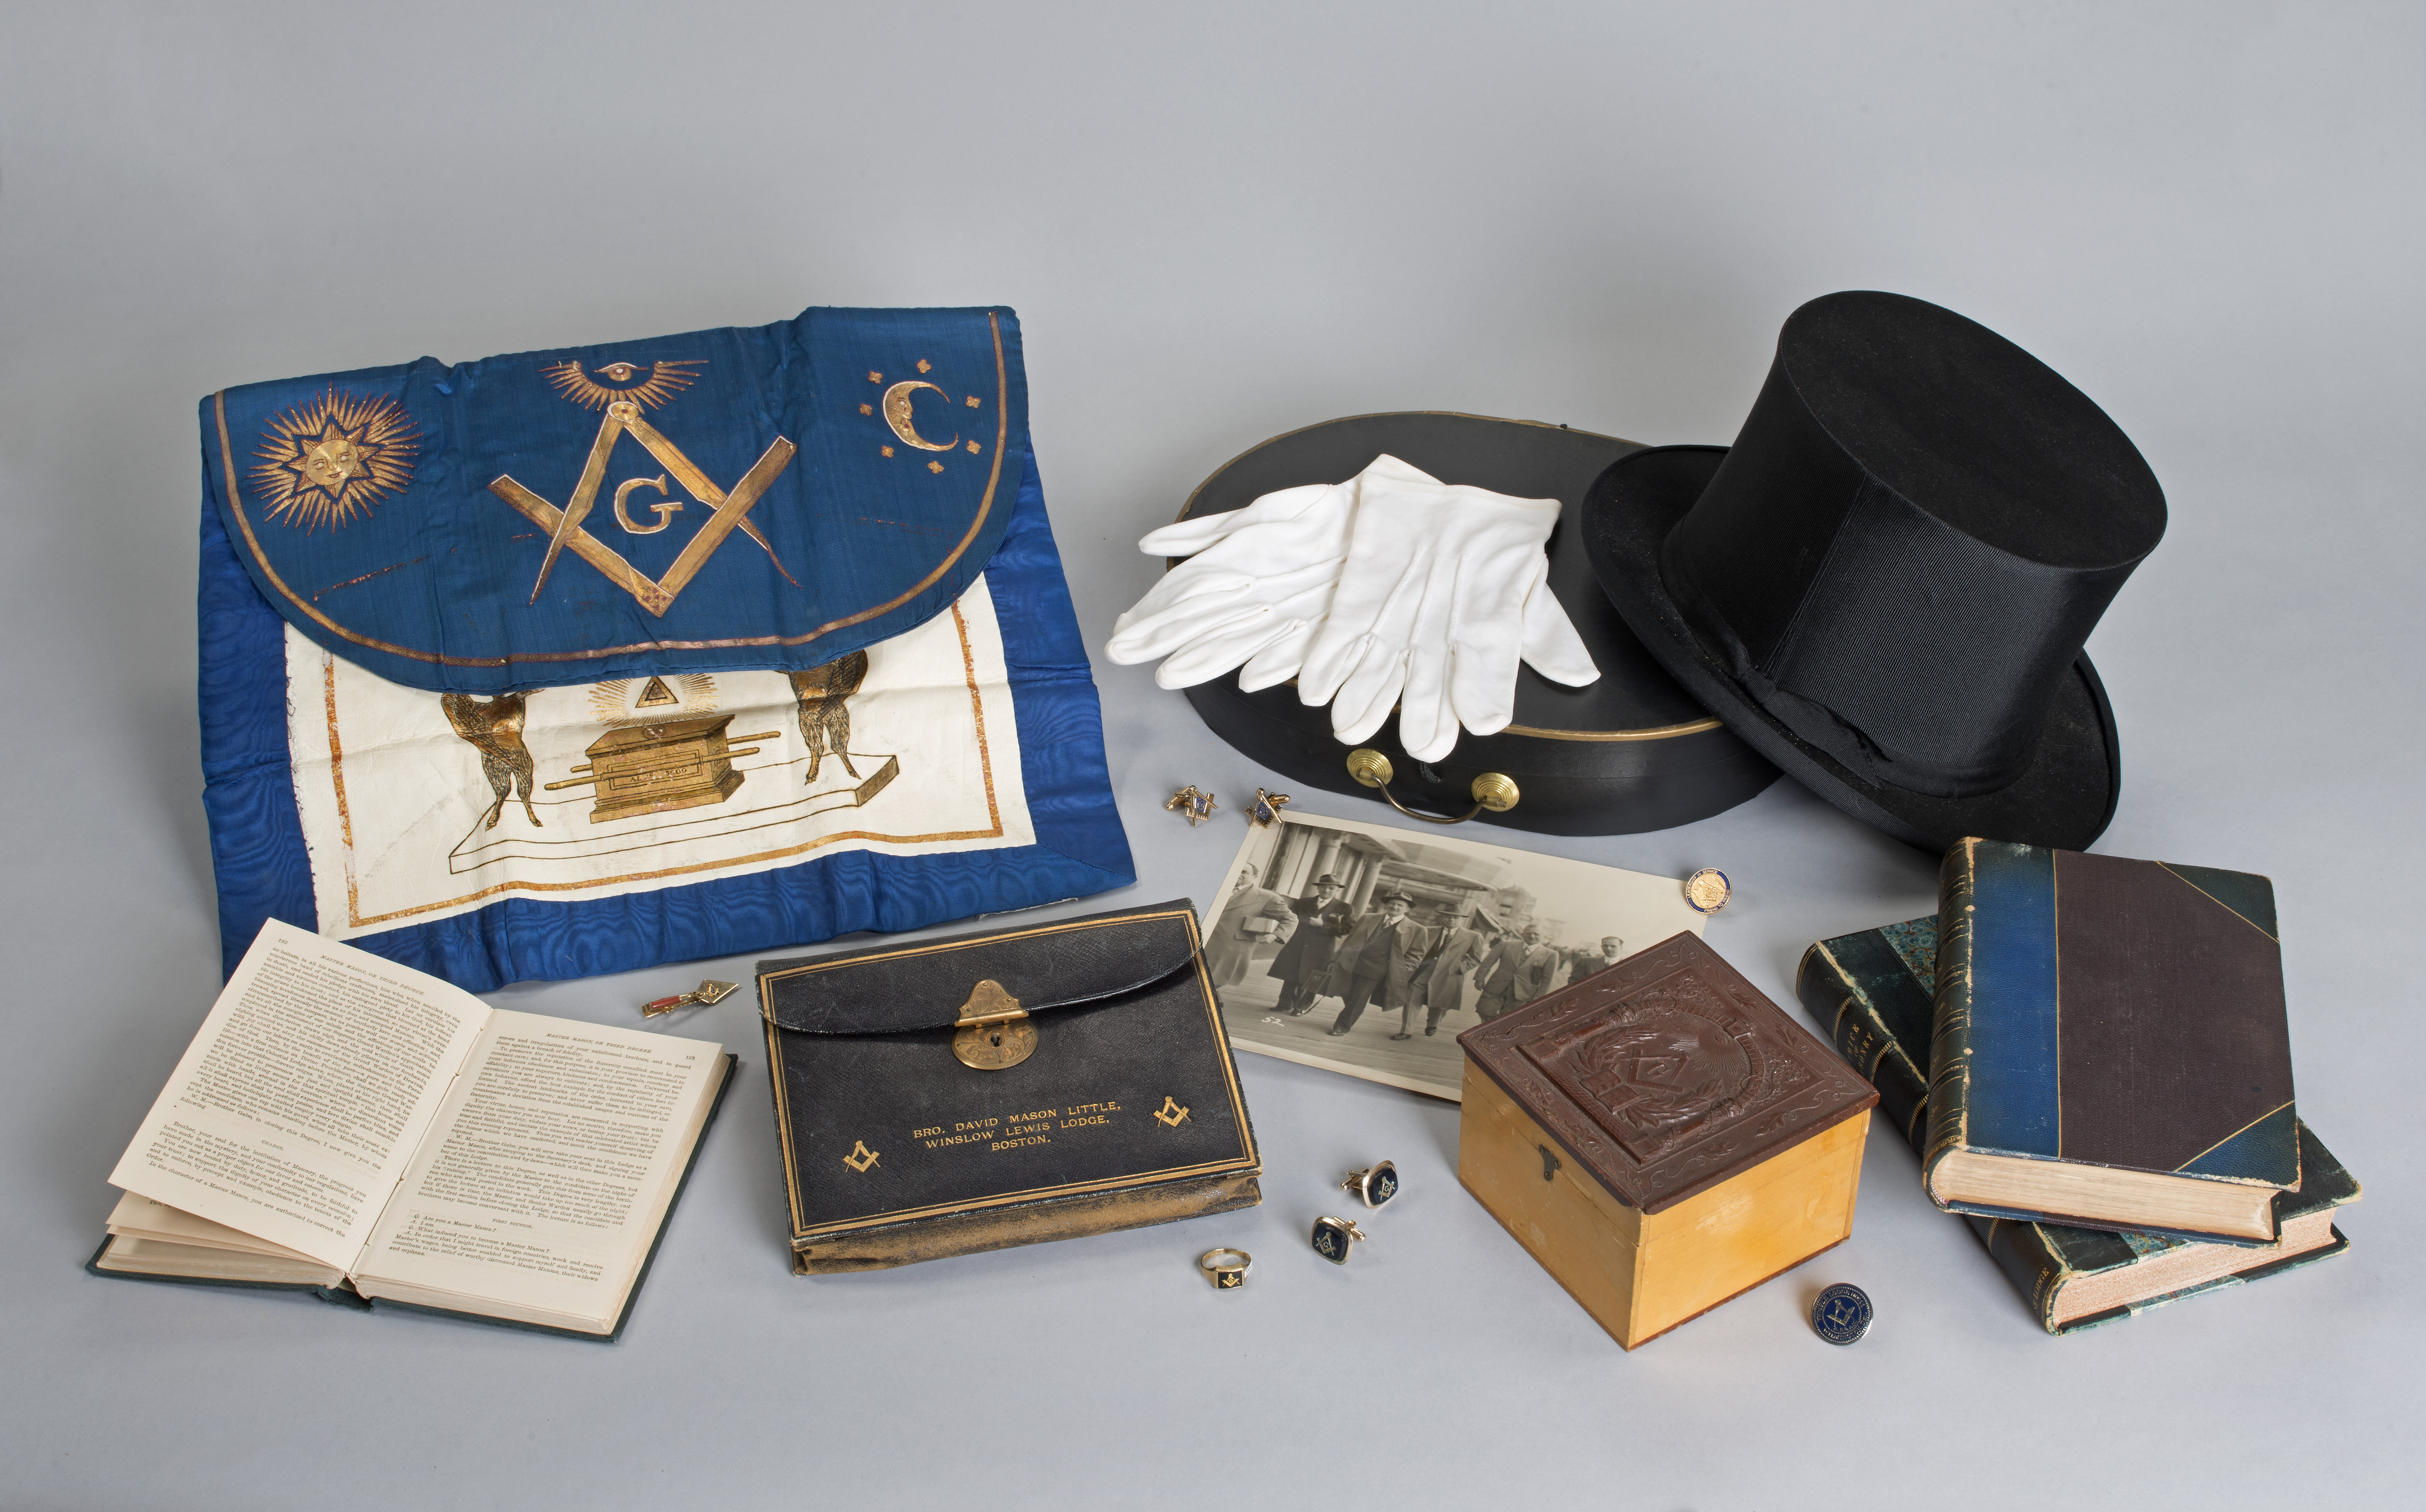 Masonic apron and artifacts